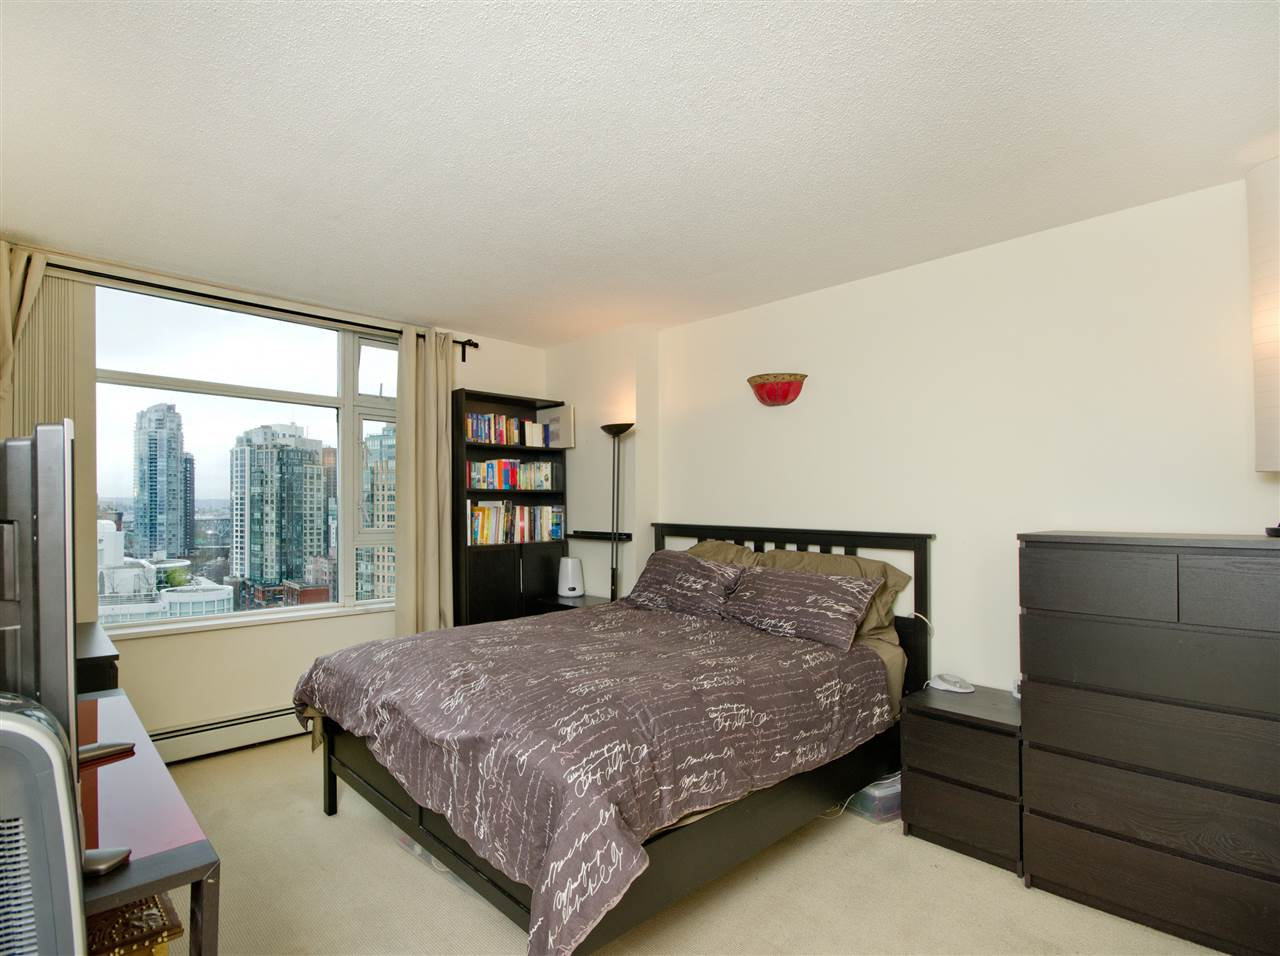 "Photo 6: 2108 198 AQUARIUS Mews in Vancouver: Yaletown Condo for sale in ""THE AQUARIUS"" (Vancouver West)  : MLS® # R2125703"